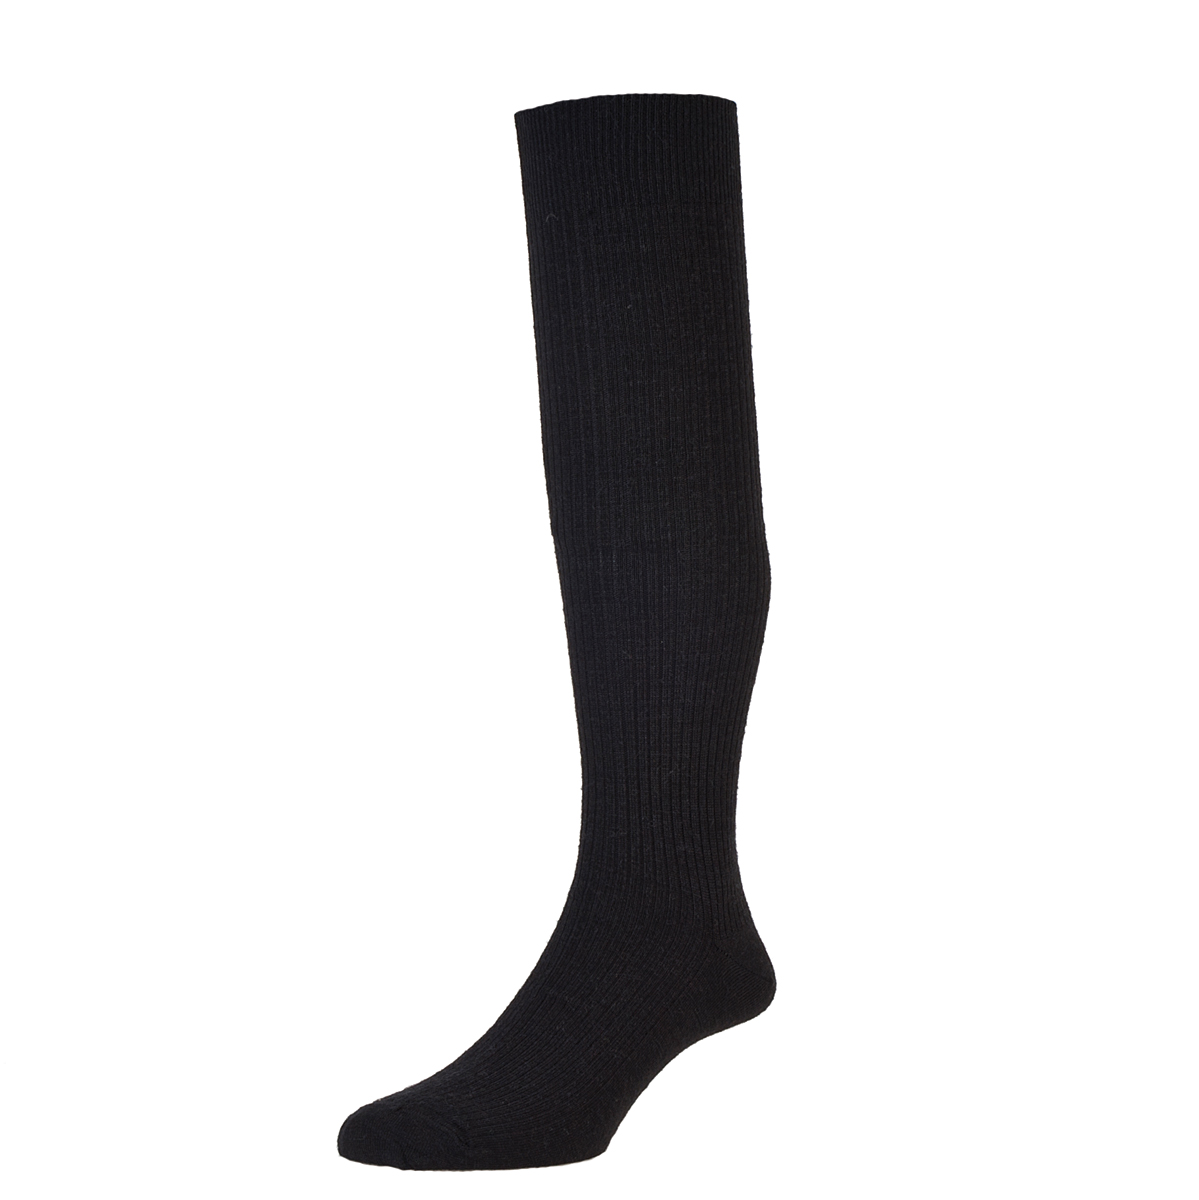 HJ Hall Immaculate Long Knee length Socks, 11-13UK Black HJ77